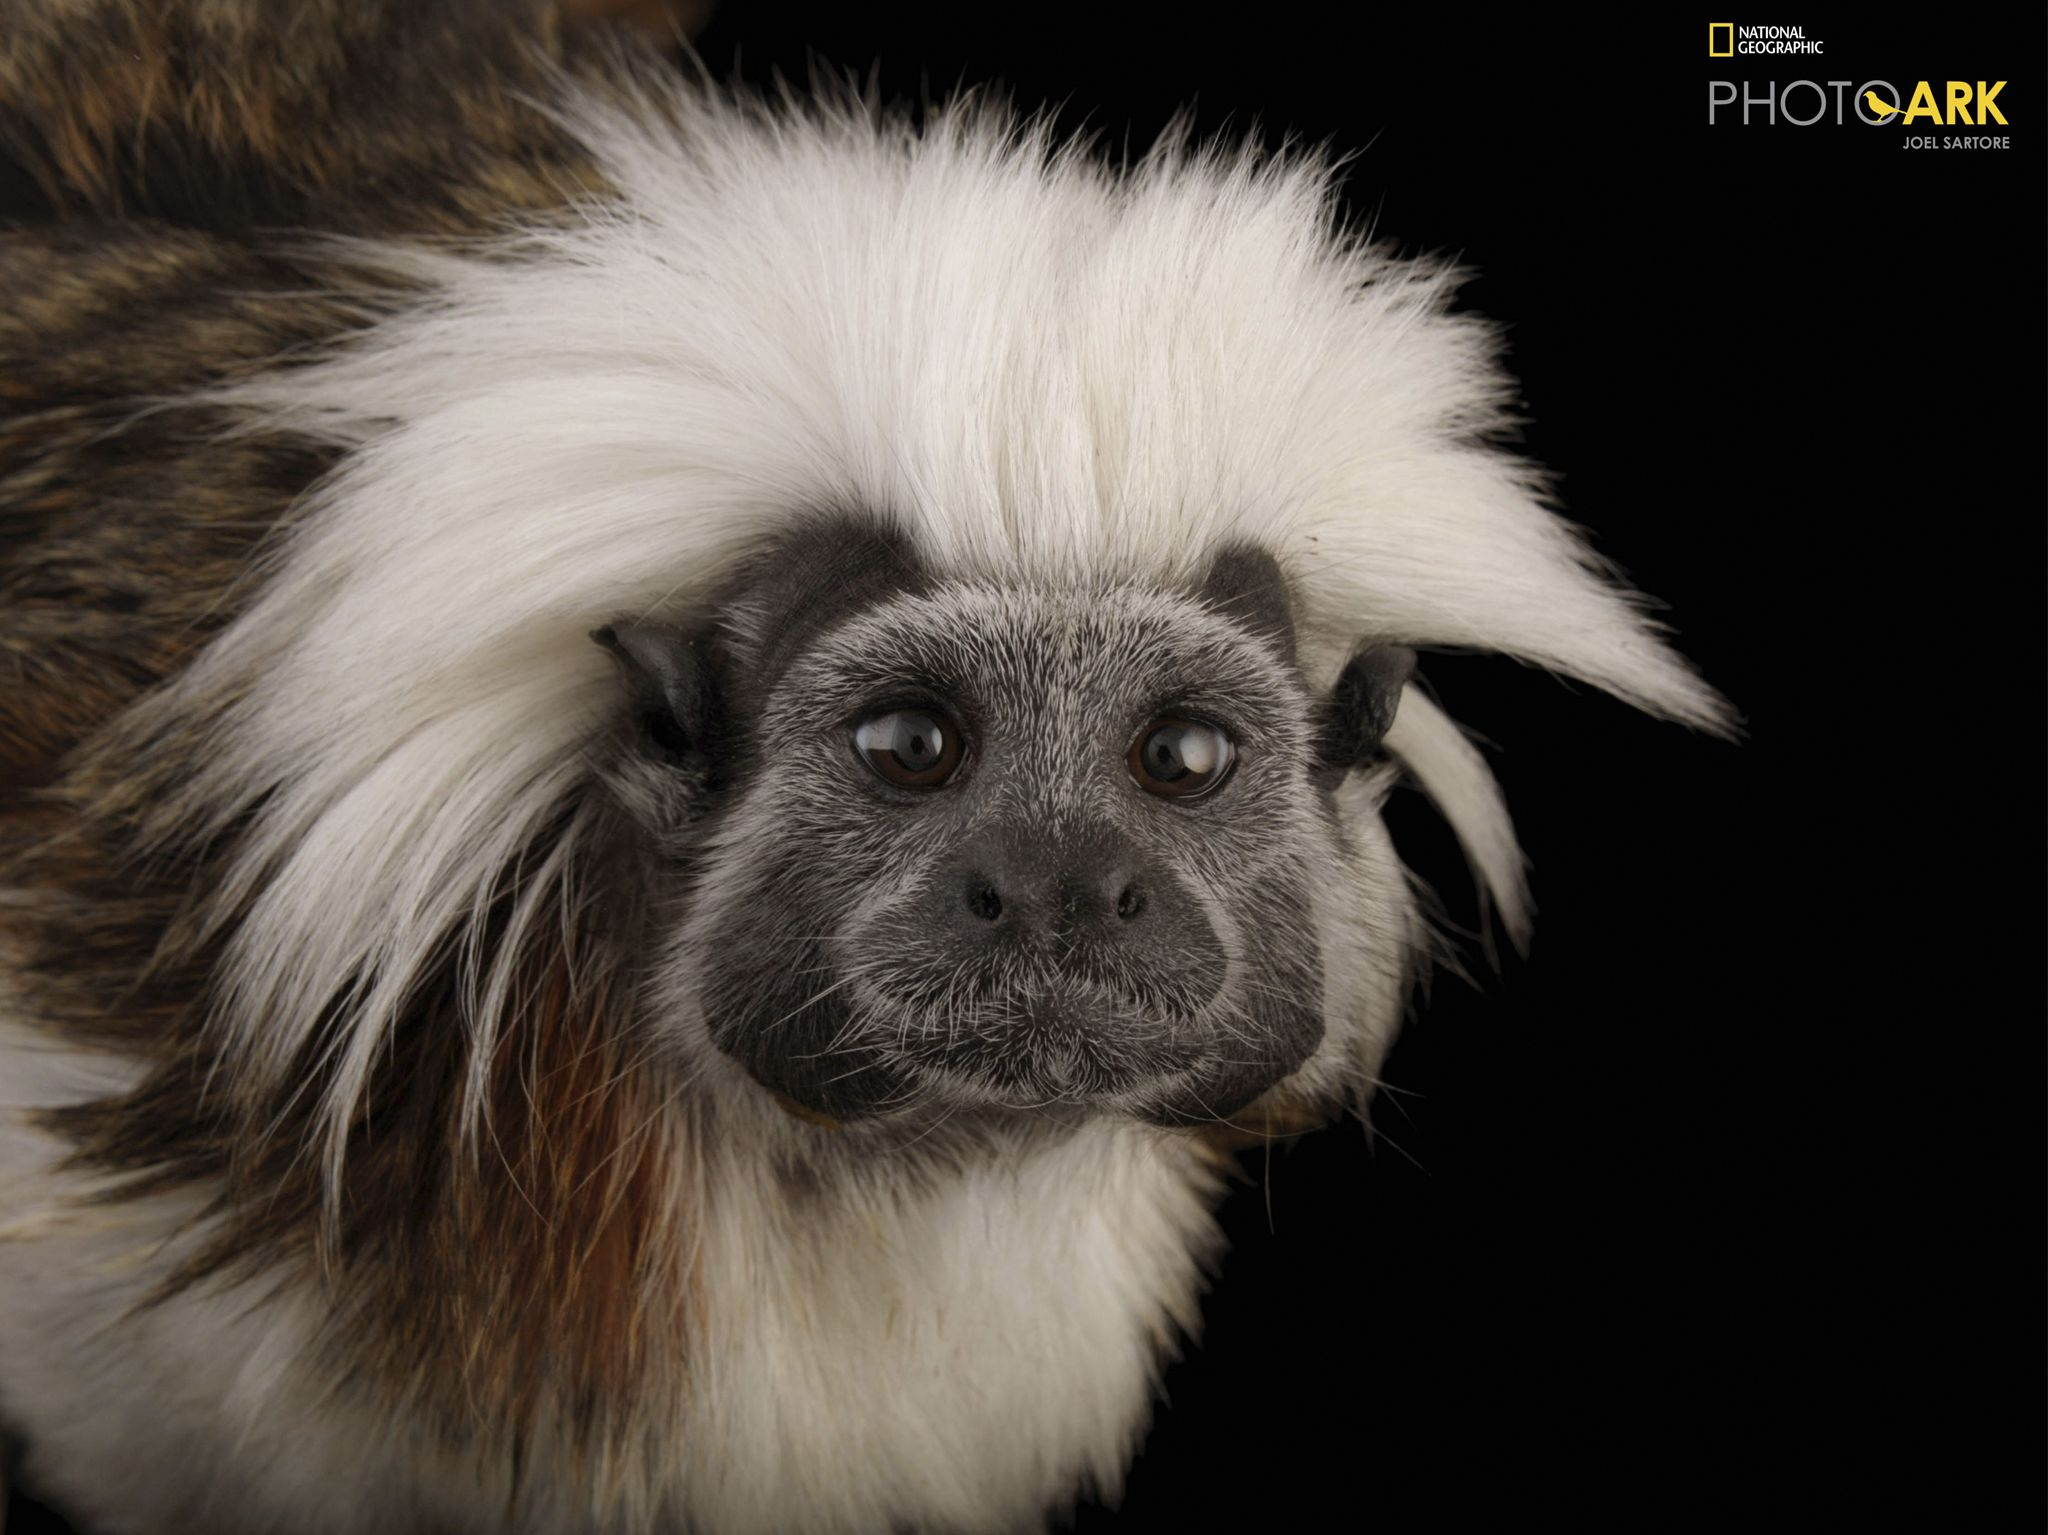 An endangered cotton-top tamarin, Saguinus oedipus, at the Miller Park Zoo. This image is from... [Photo of the day - November 2020]